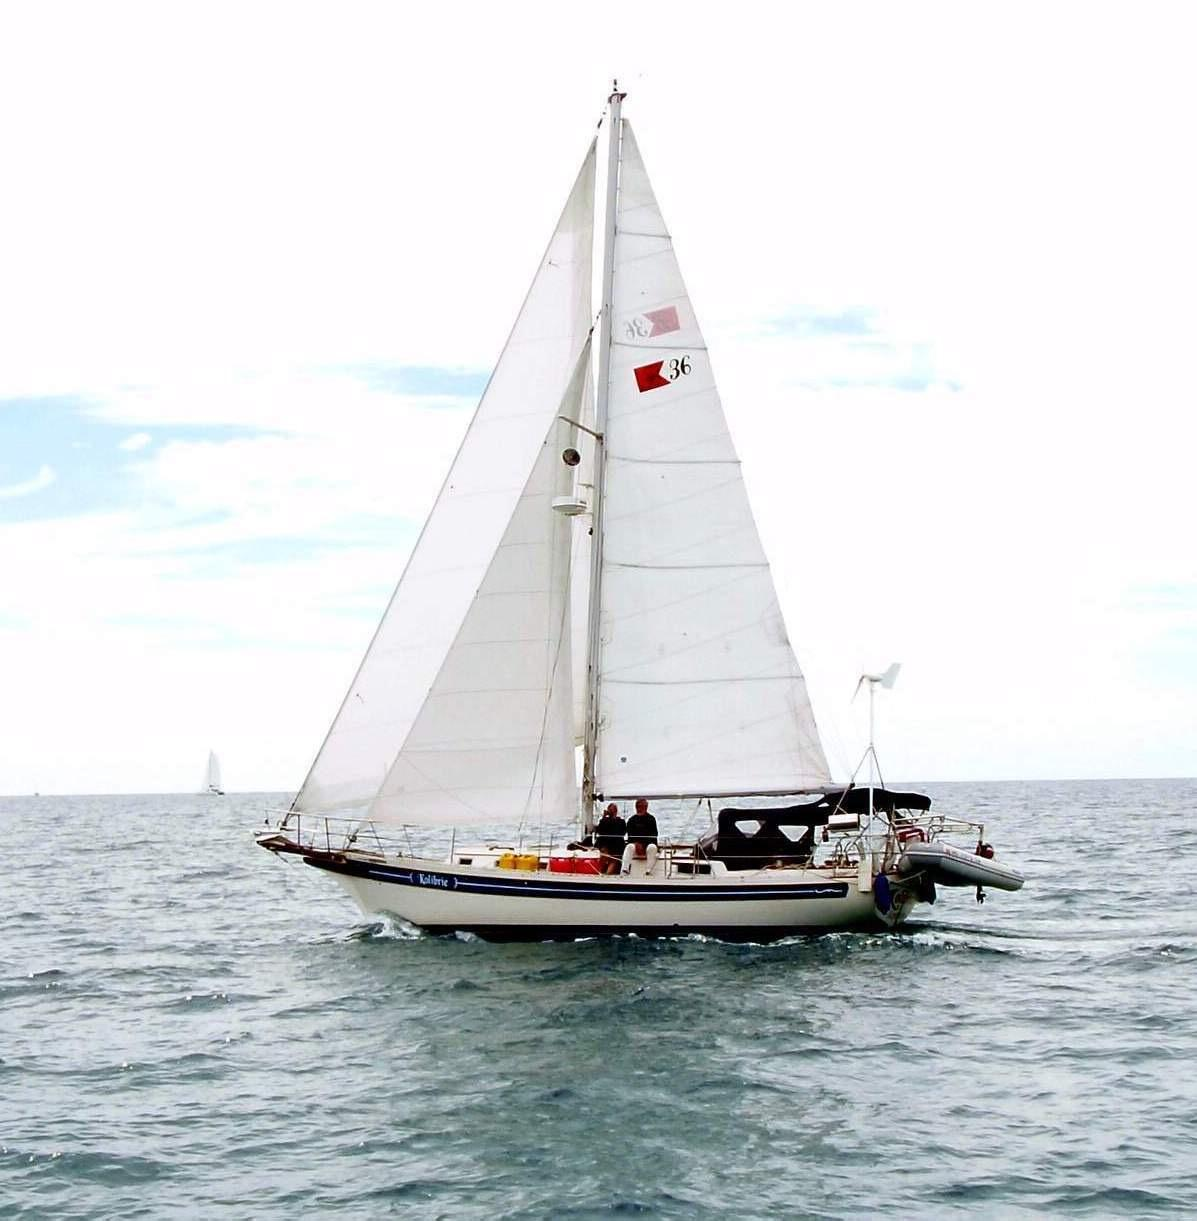 1987 Bayfield 36 Cutter Sail Boat For Sale Www